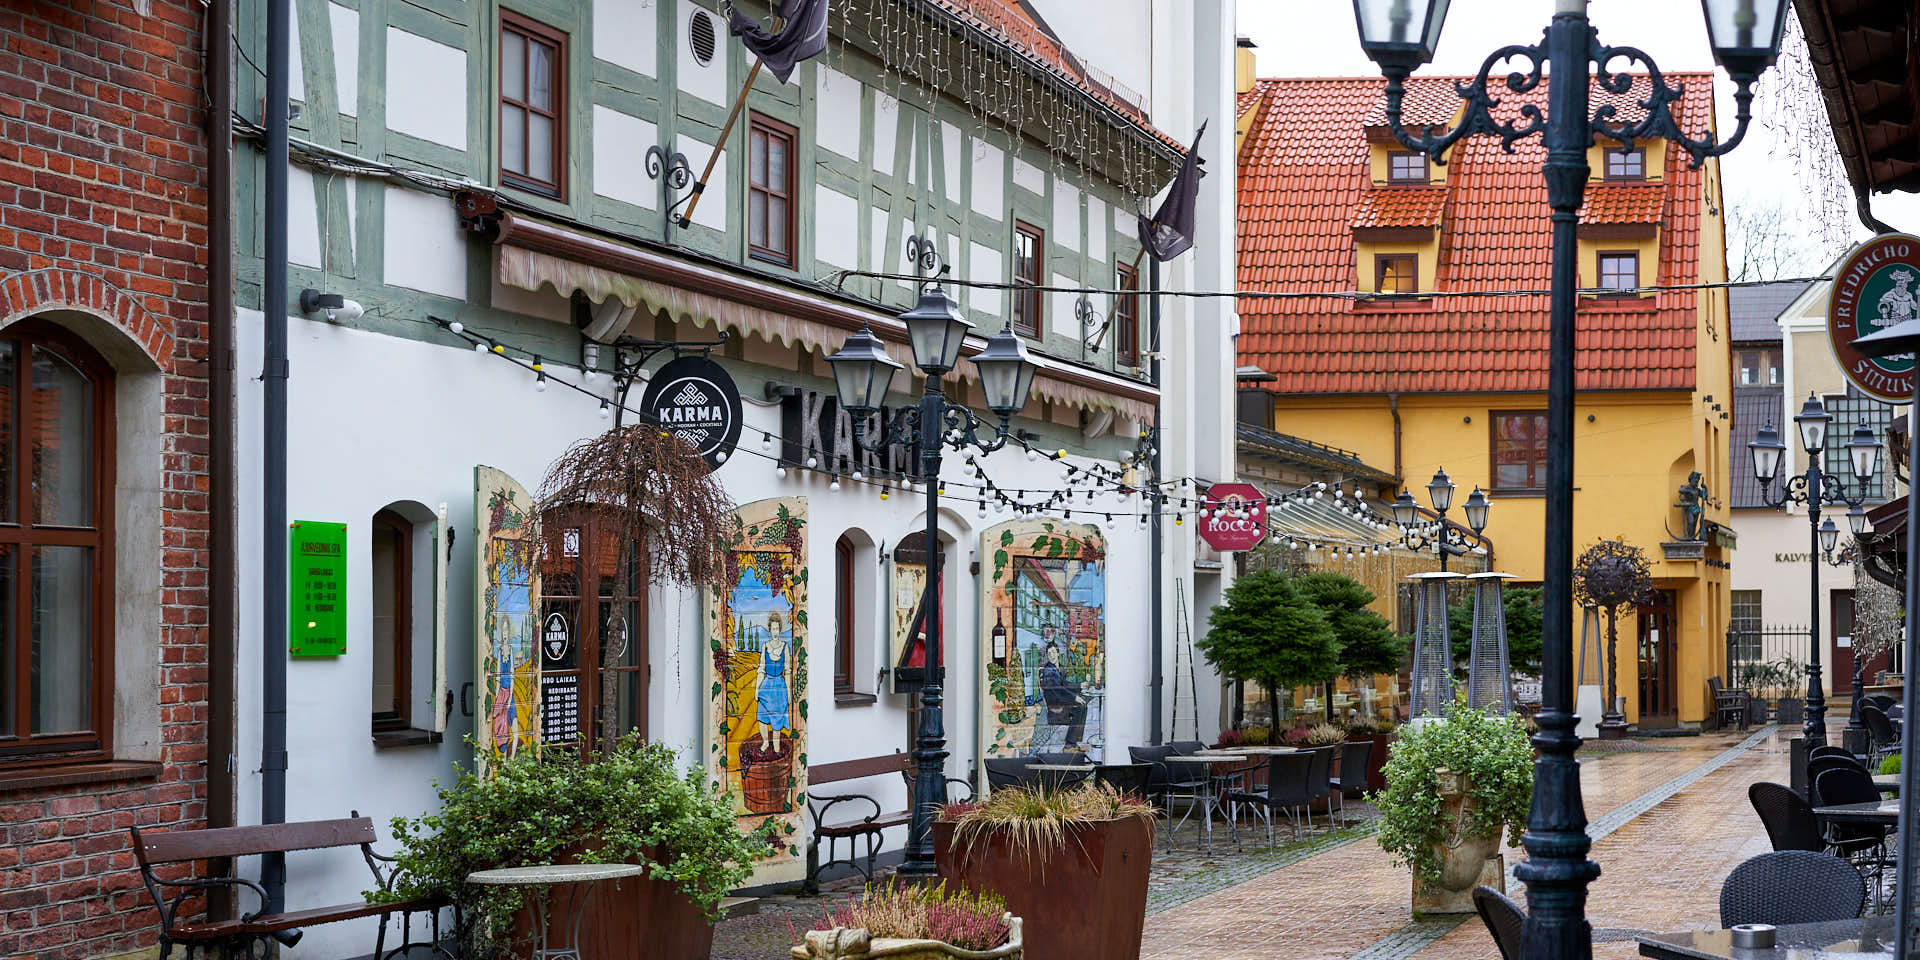 Traditional houses in Klaipeda Old Town